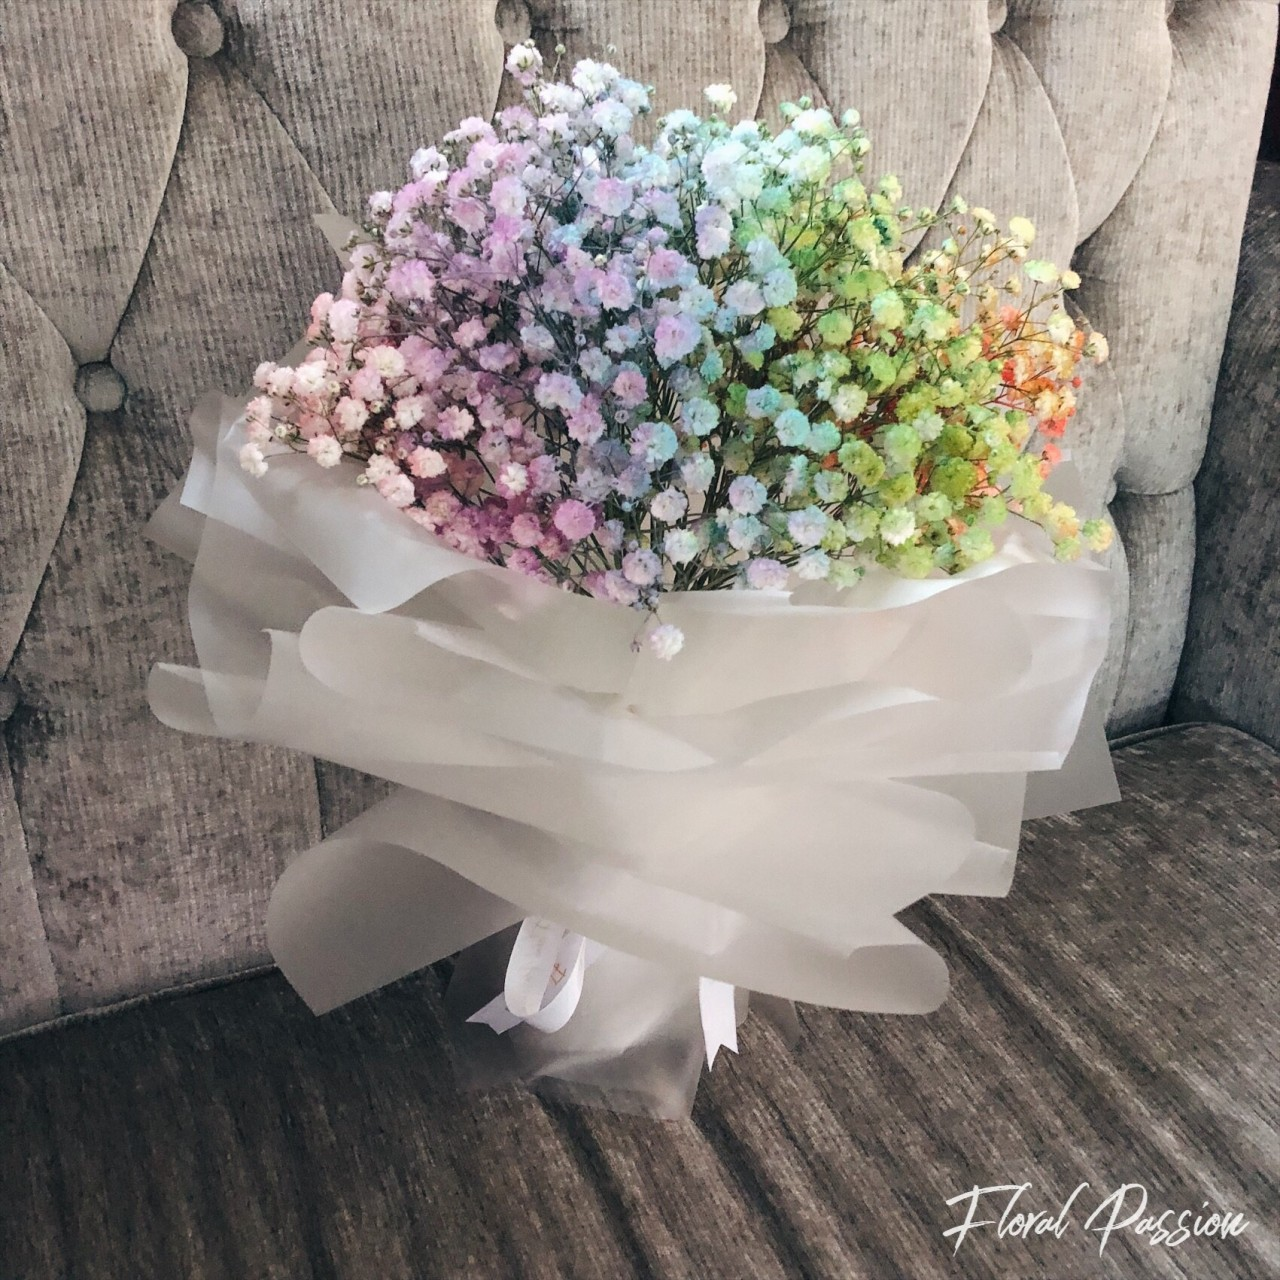 8 affordable valentines day bouquets under 50 all over singapore 1 floral passion rainbow babys breath and fluttery hydrangea bunches izmirmasajfo